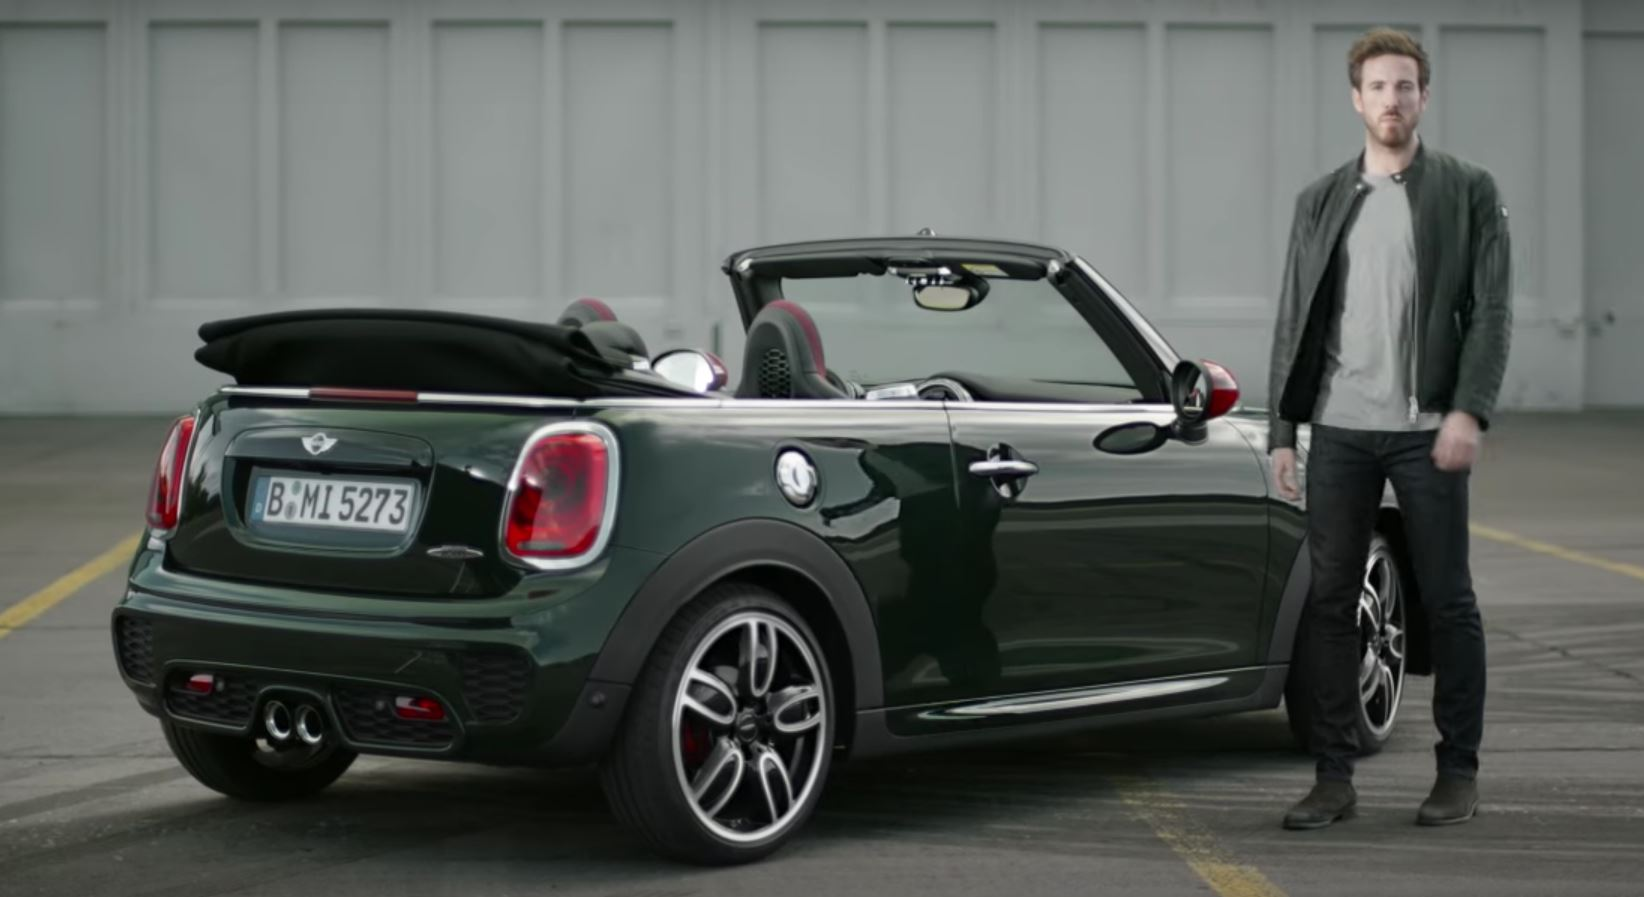 Mini Jcw Convertible Handbrake Turns Its Way Into Your Heart